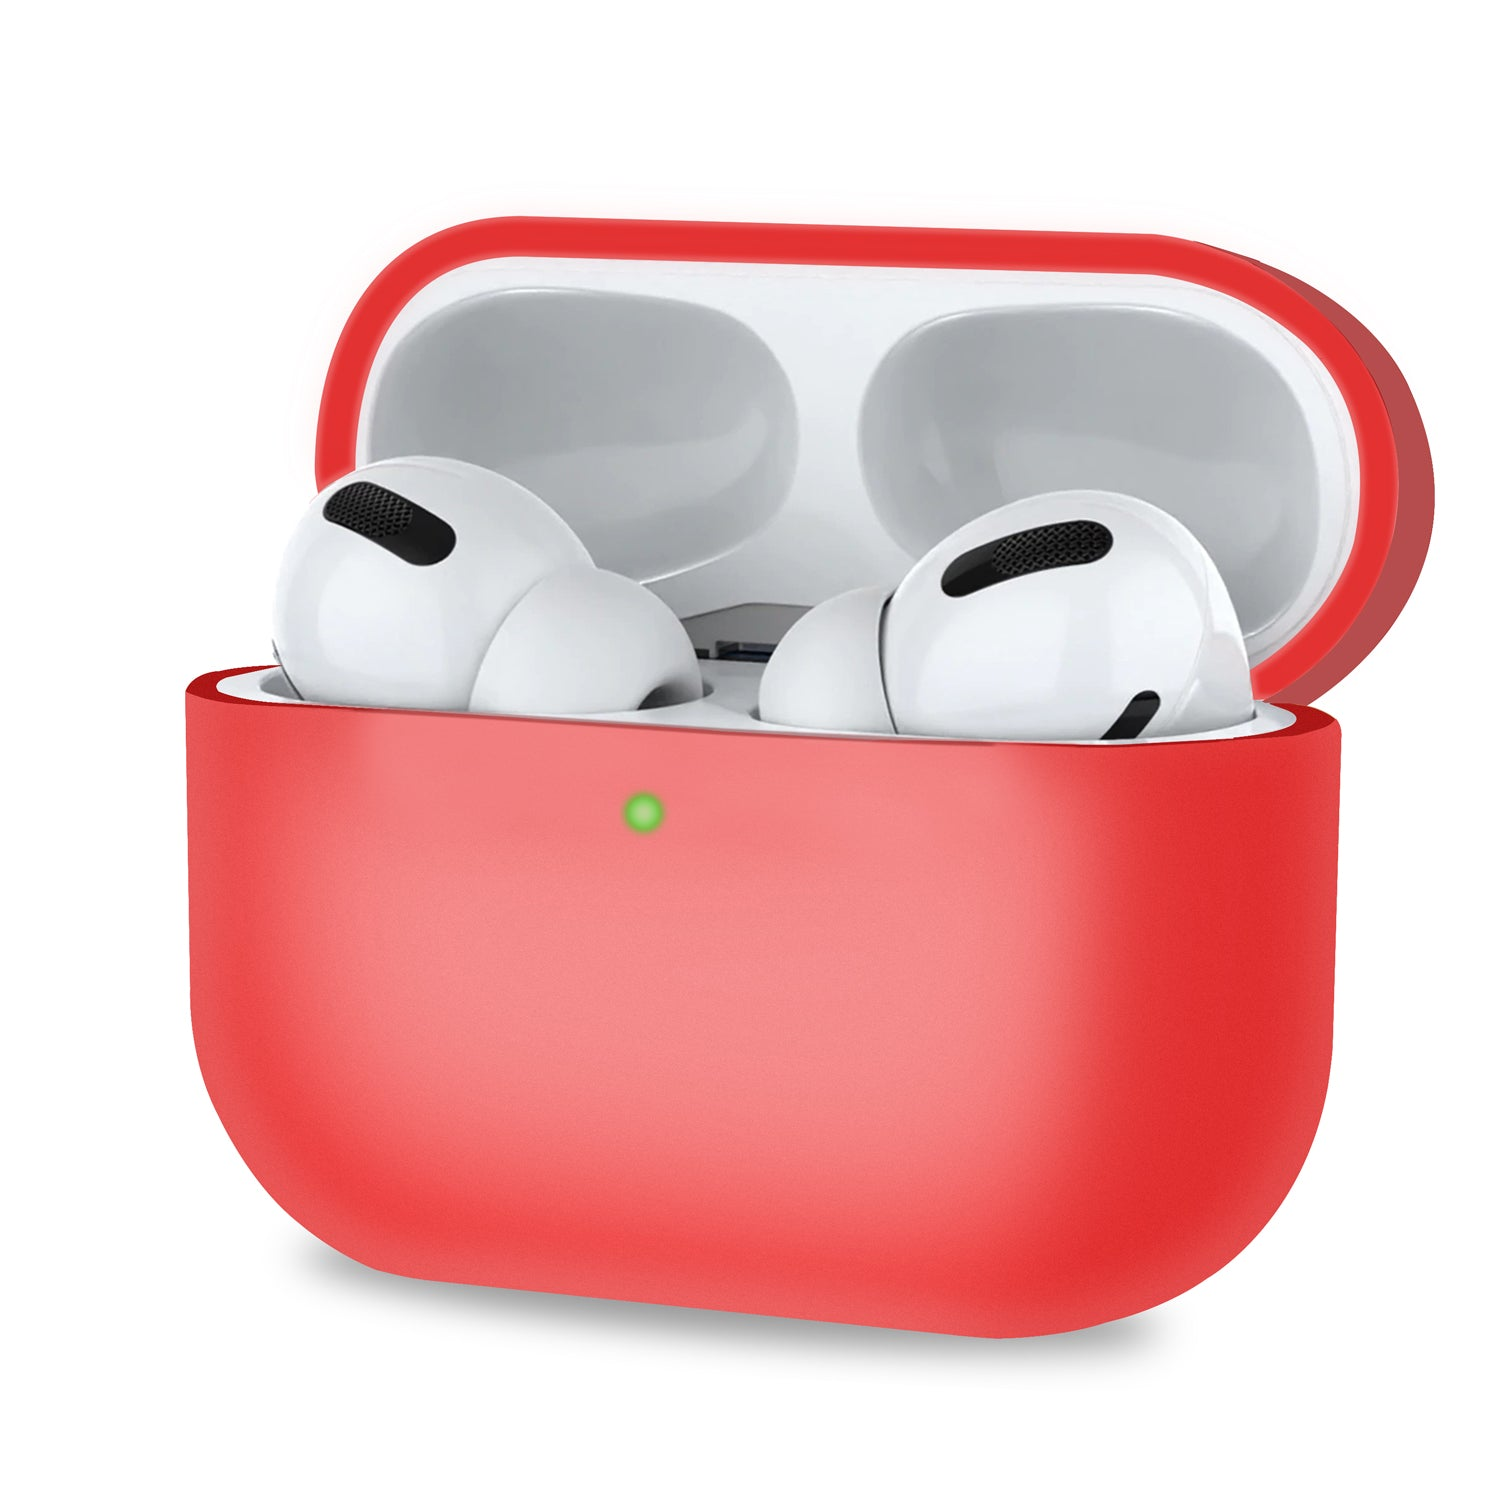 Red Silicone Shockproof Anti- Scratch Ultra-Thin Case for Airpods Pro, Audio Accessories by TradeNRG